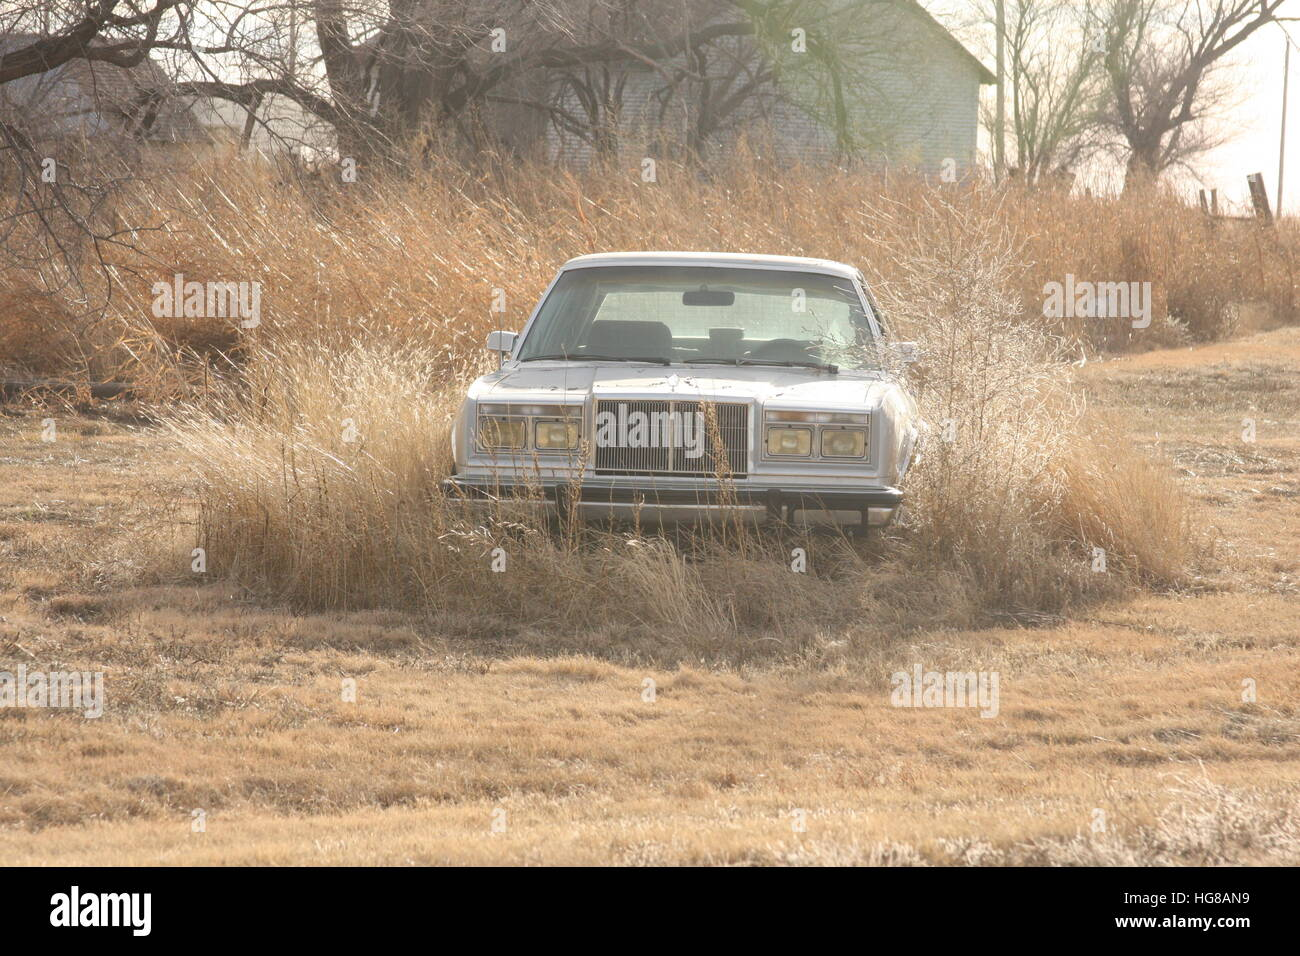 Abandoned vehicle in yard - Stock Image